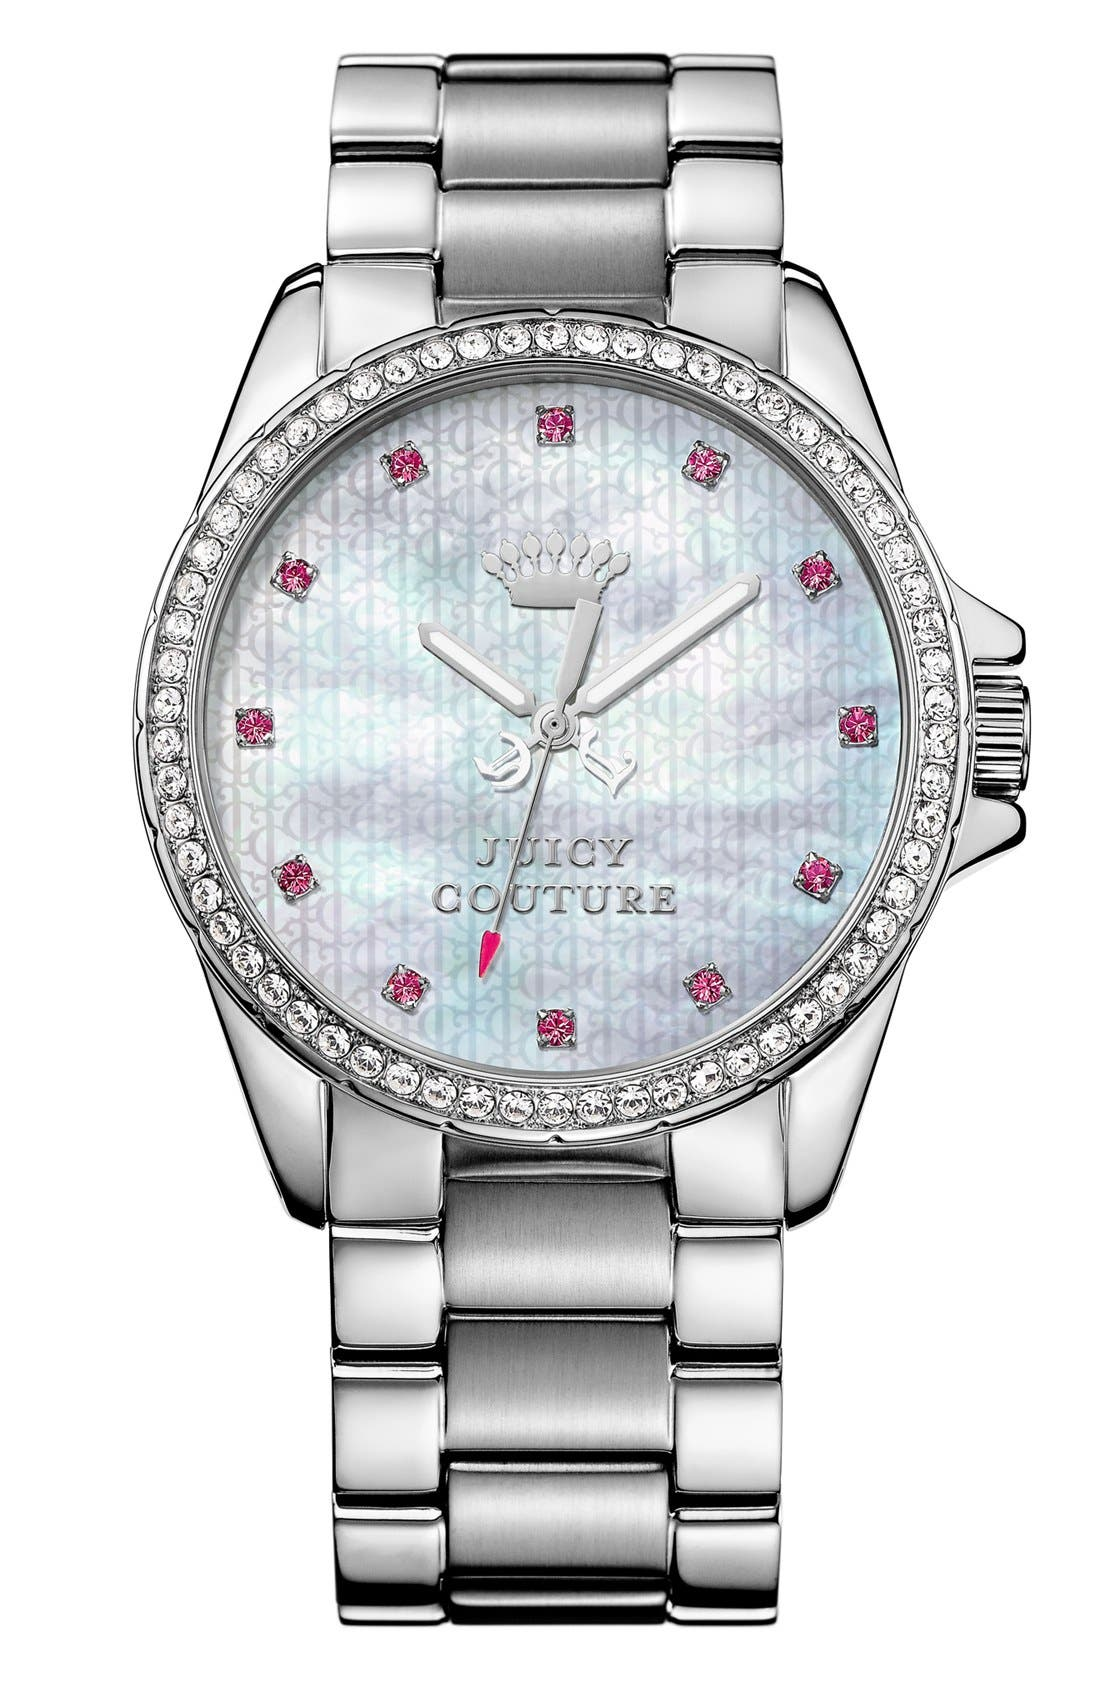 Alternate Image 1 Selected - Juicy Couture 'Stella' Crystal Bezel Watch, 40mm